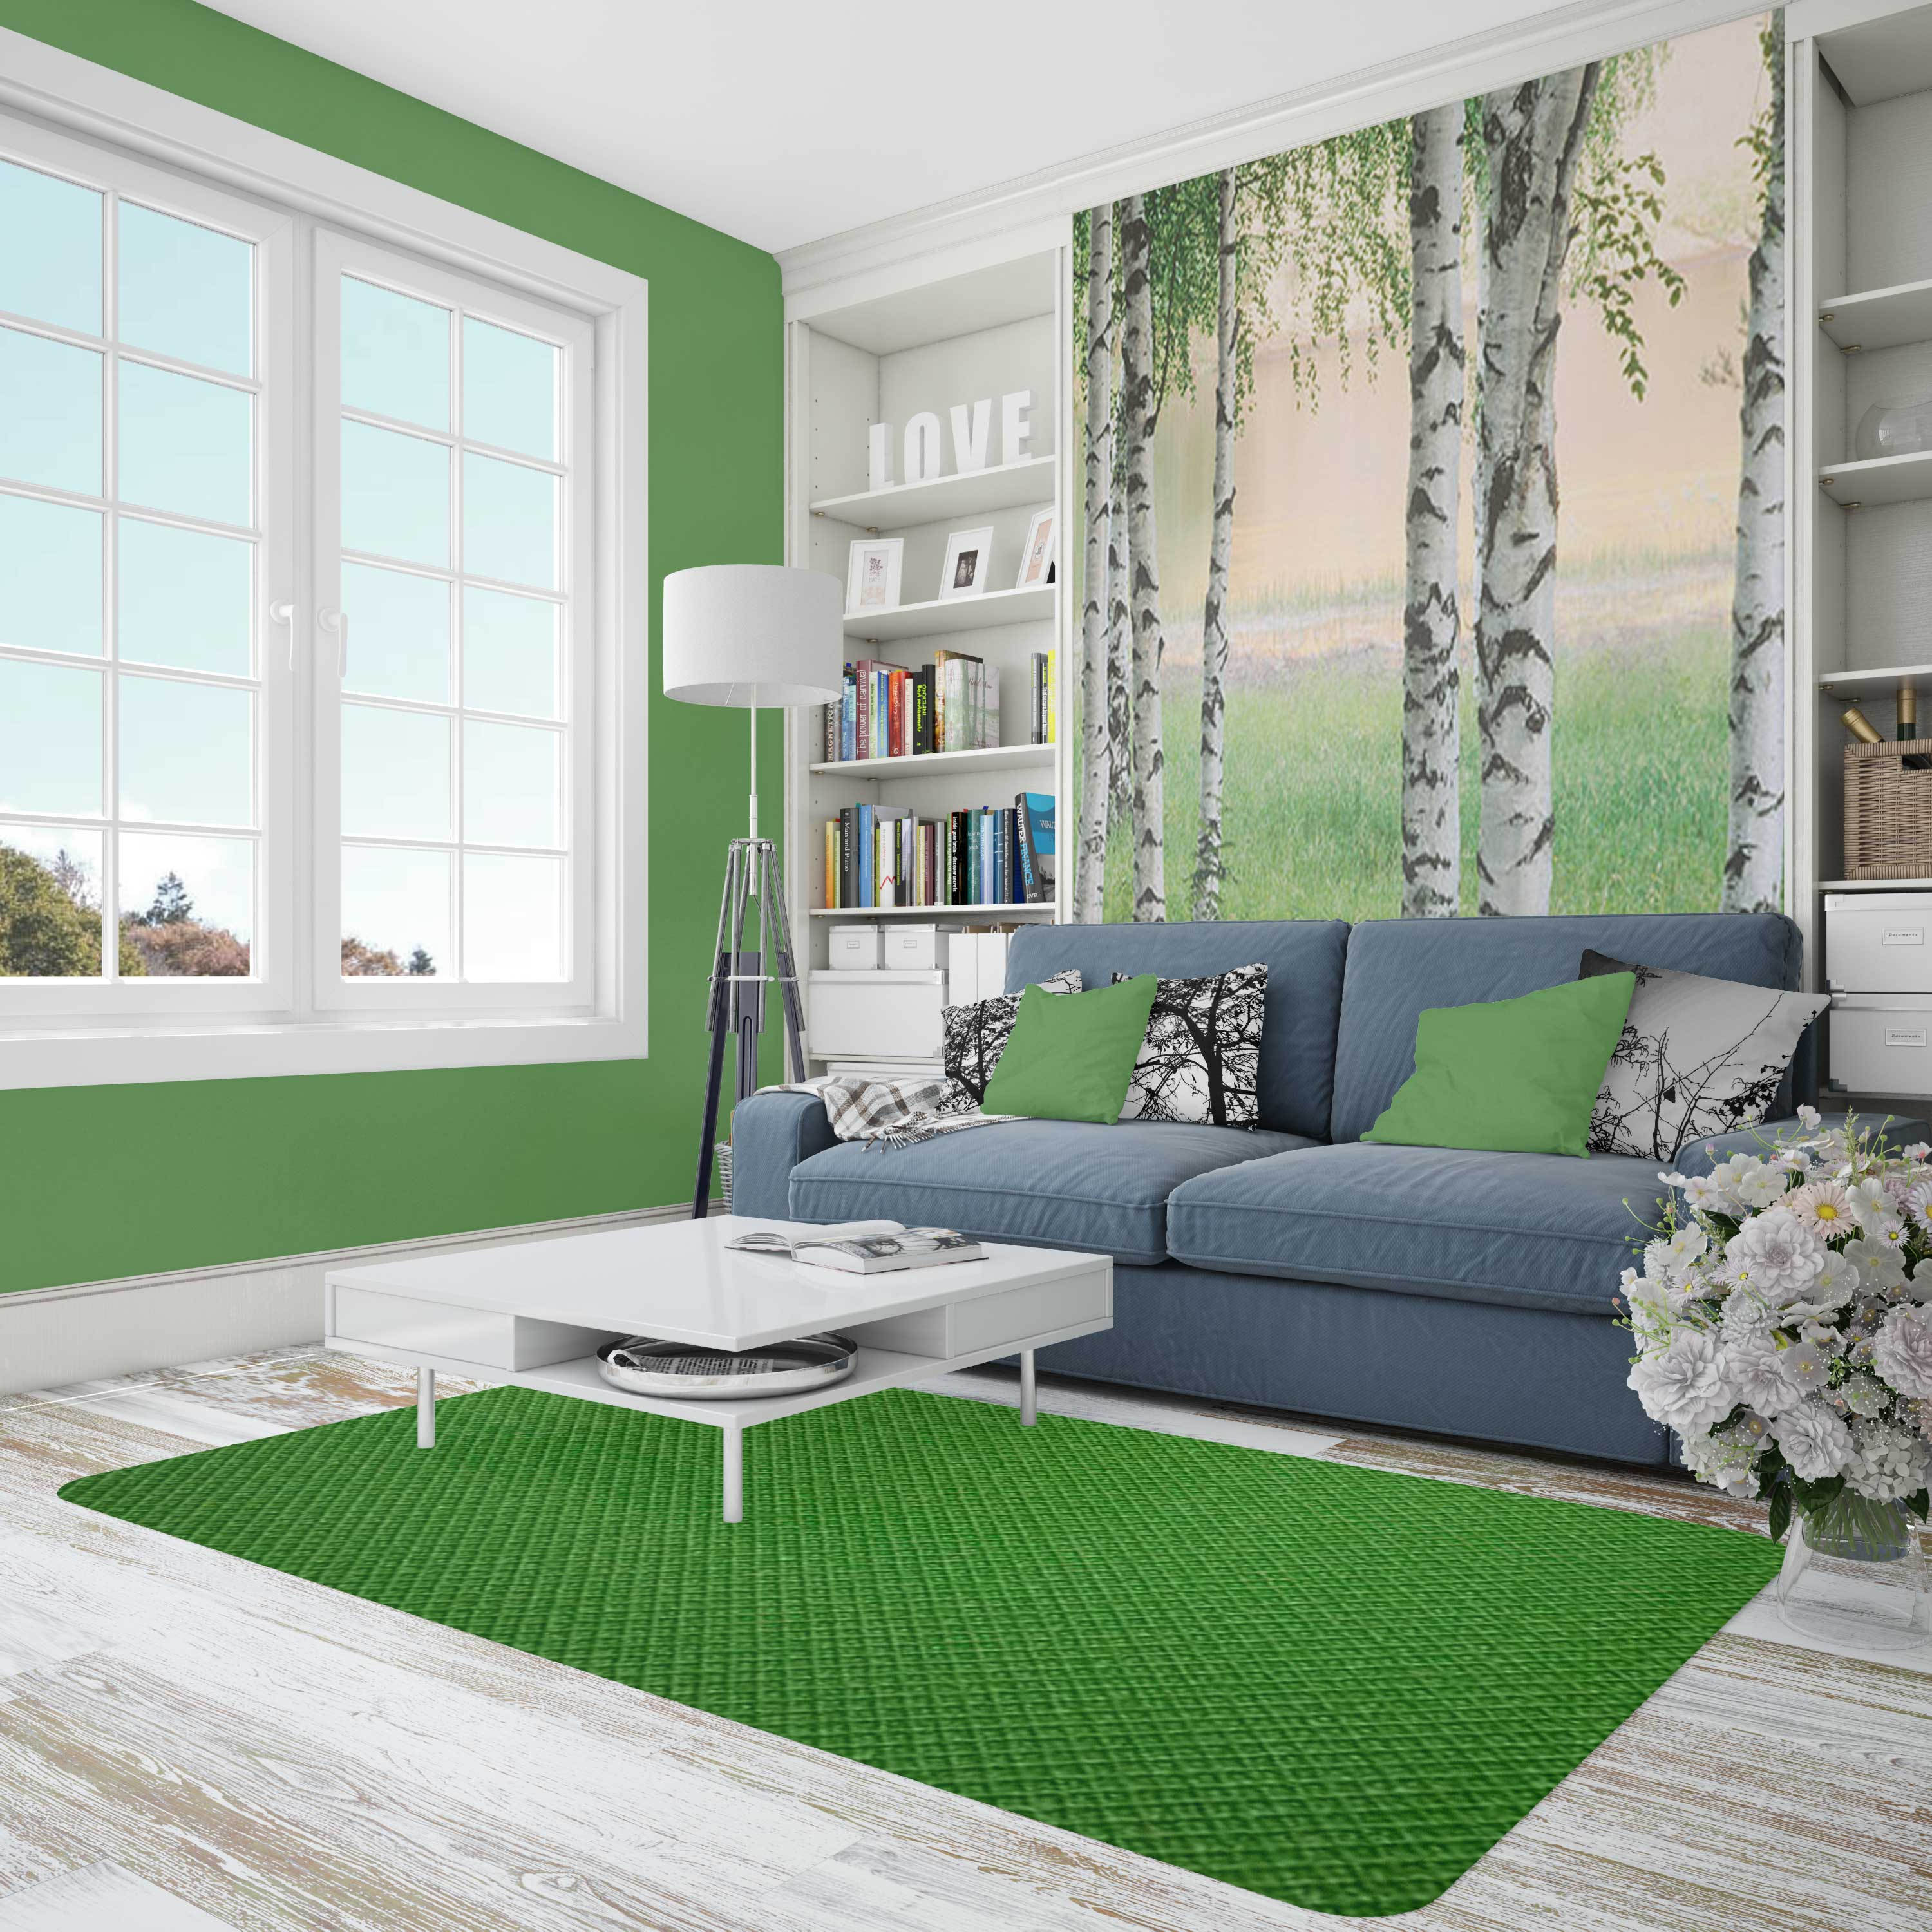 Free Room Painting Wall Canvas Mockup